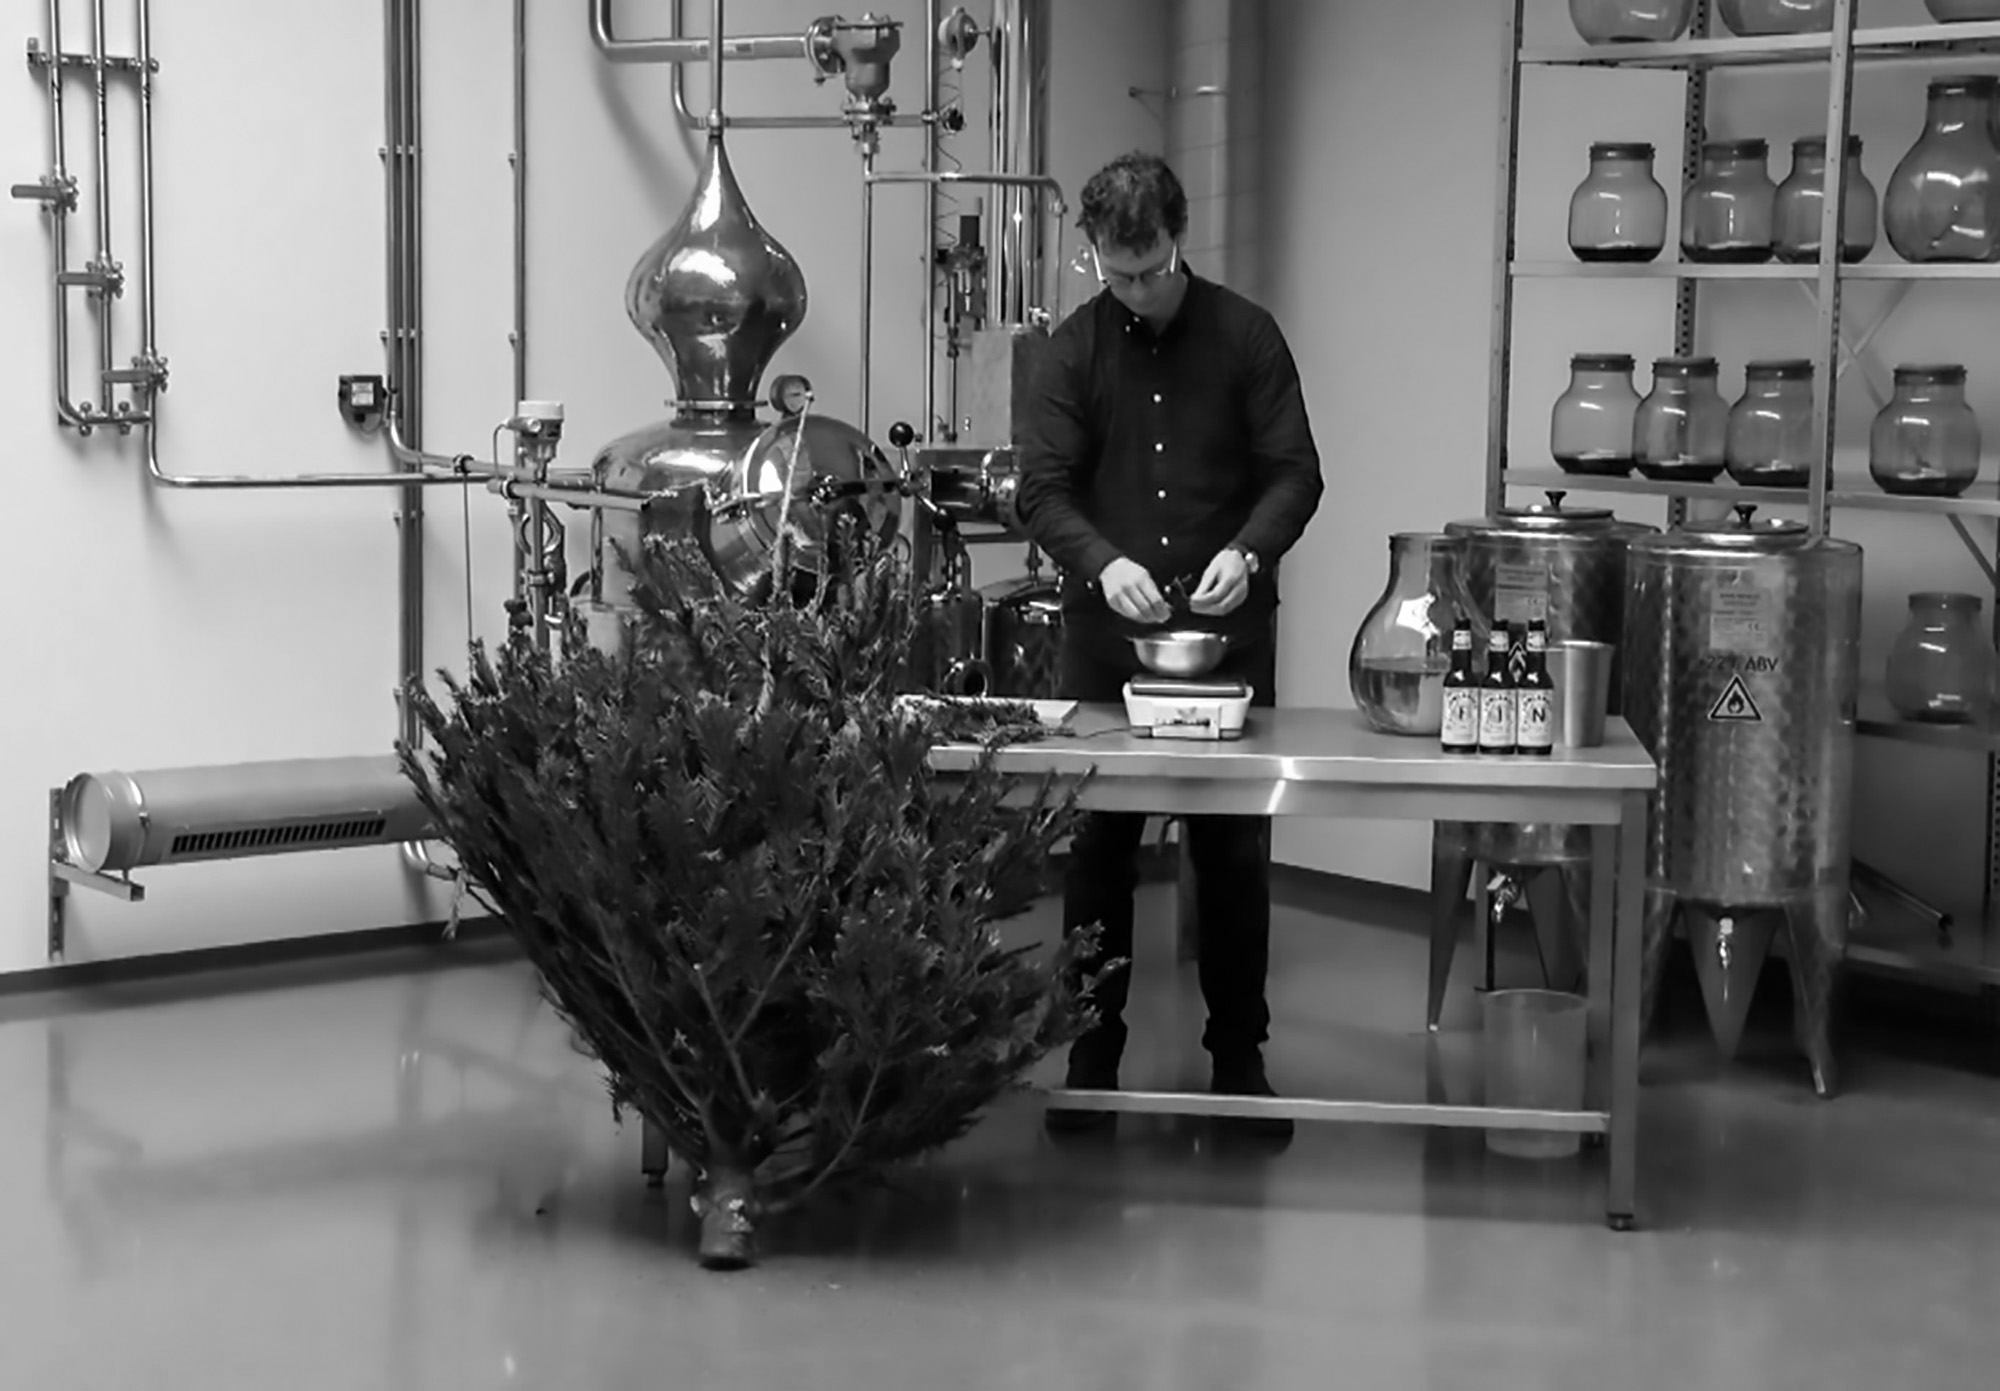 Dutch Brewer Collects Old Xmas Trees To Make Beer